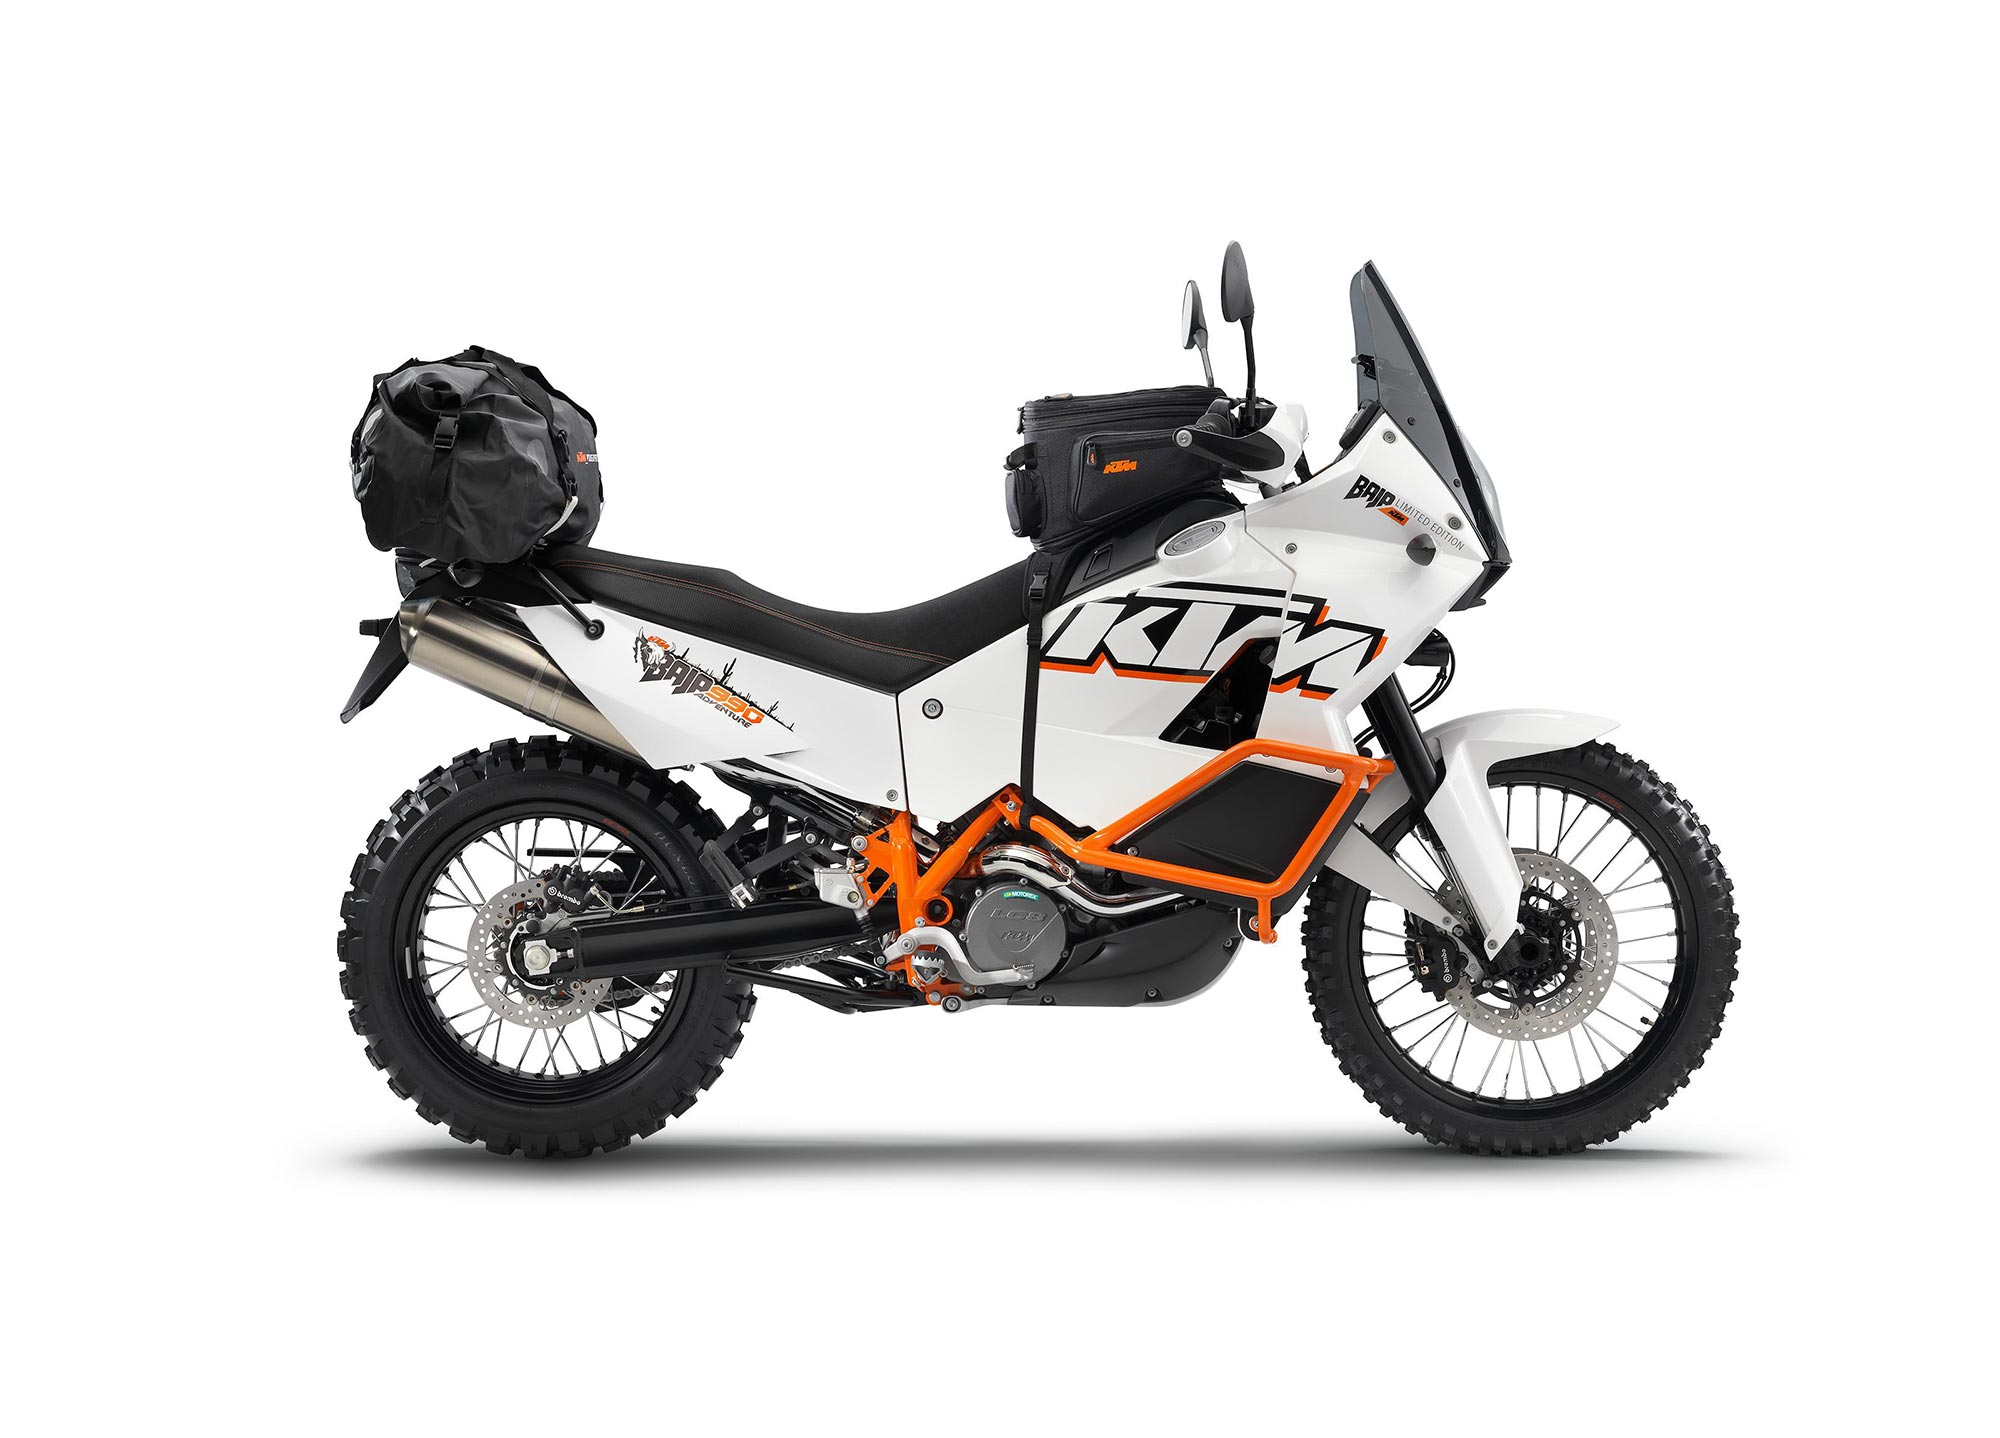 Image result for 2013 KTM 990 Adventure Baja Special Edition